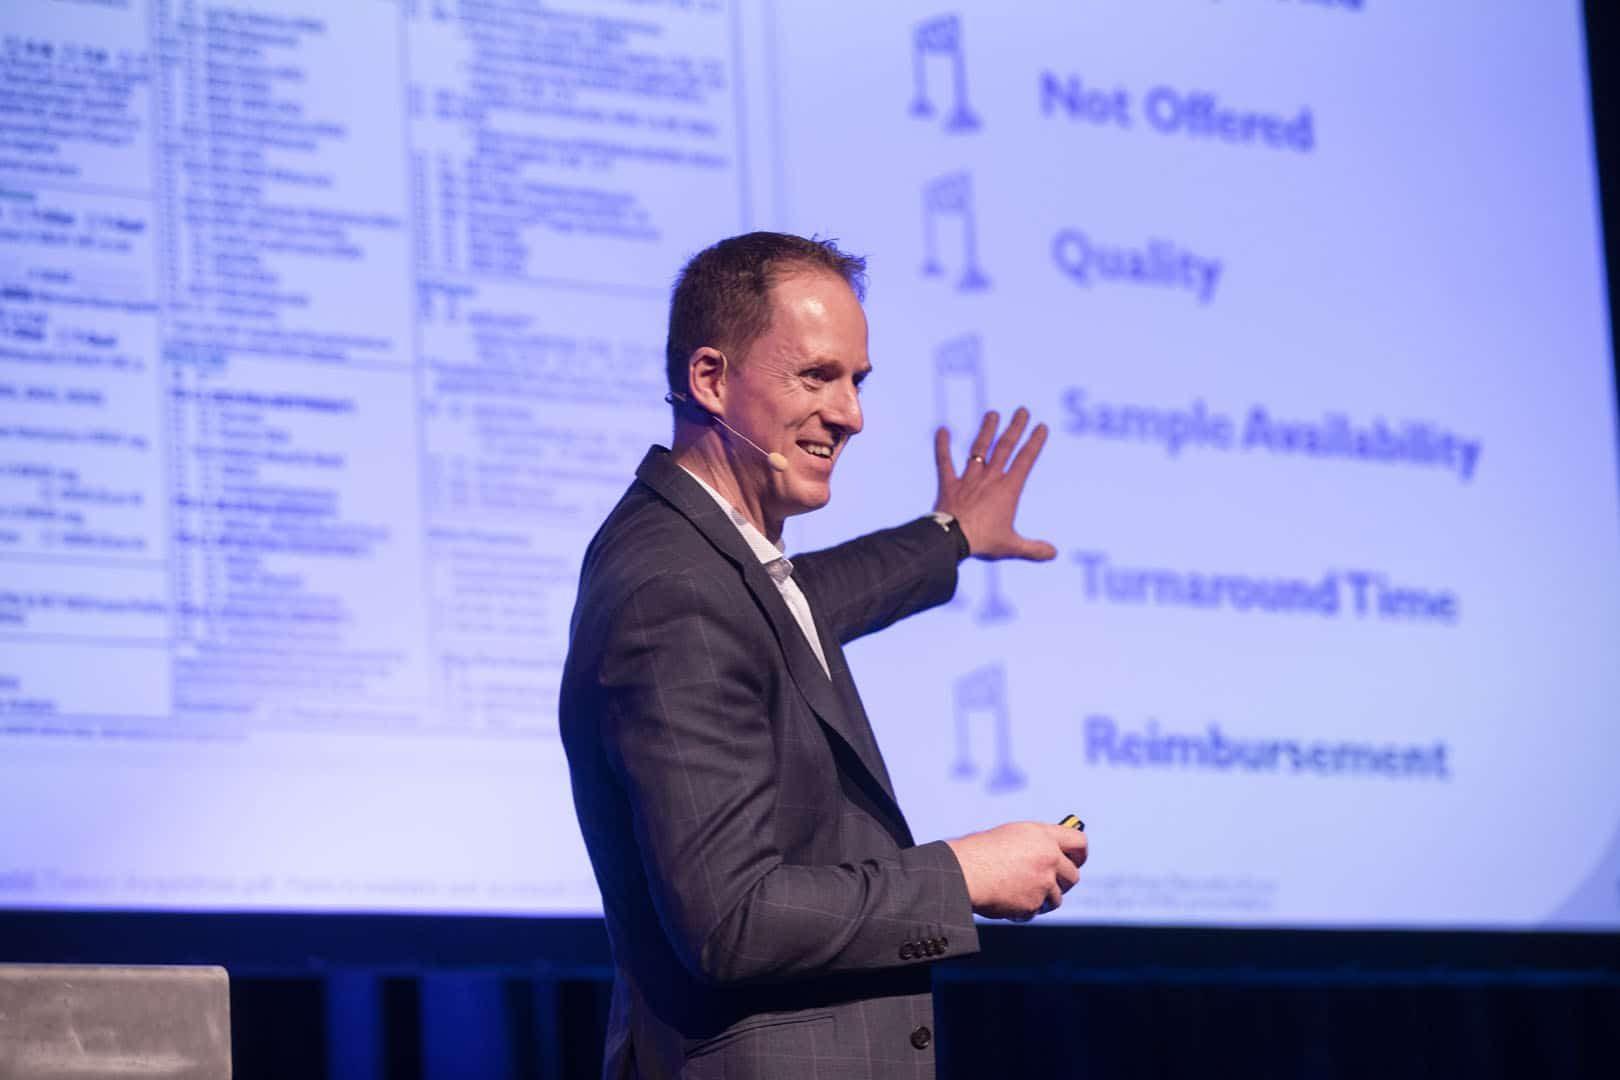 Derek Hosty Diaceutics Big Data Belfast 2019 | Analytics Engines